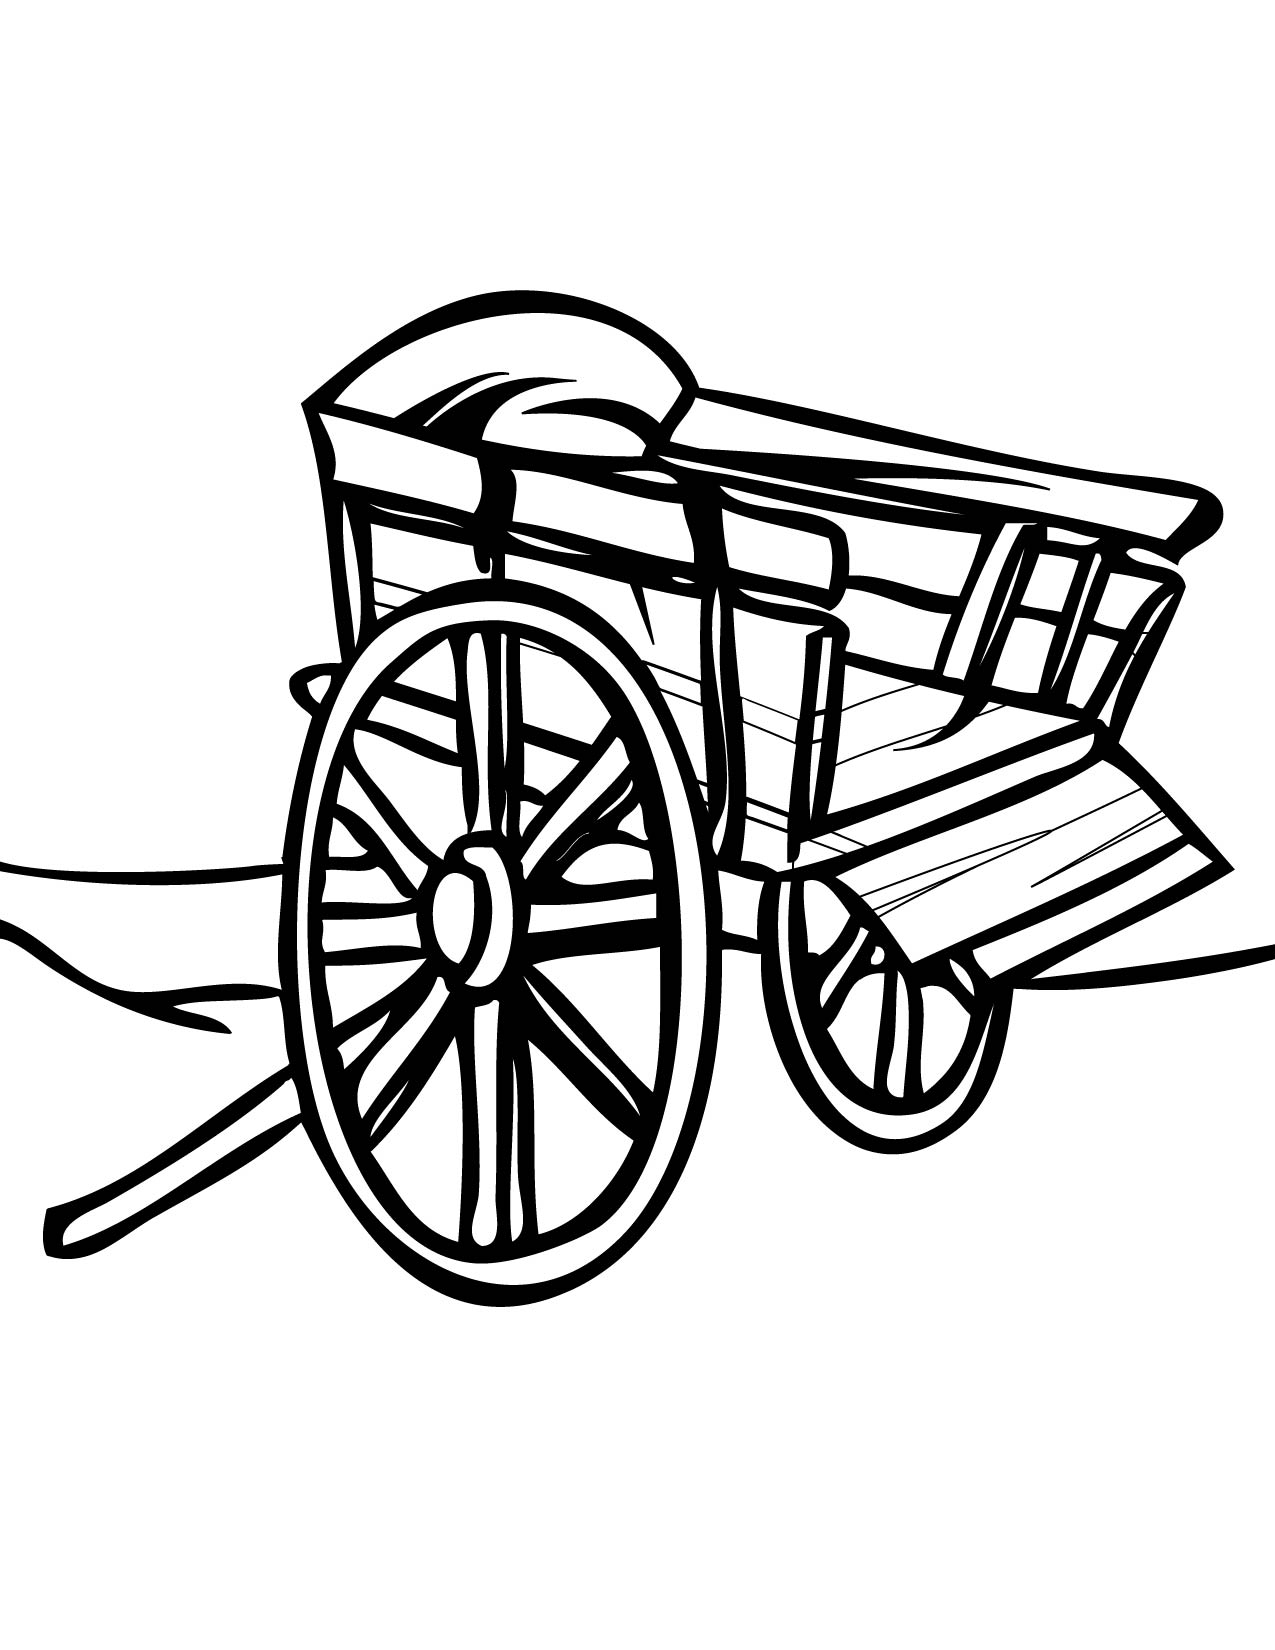 Free Golf Carts Coloring Pages Sketch Coloring Page